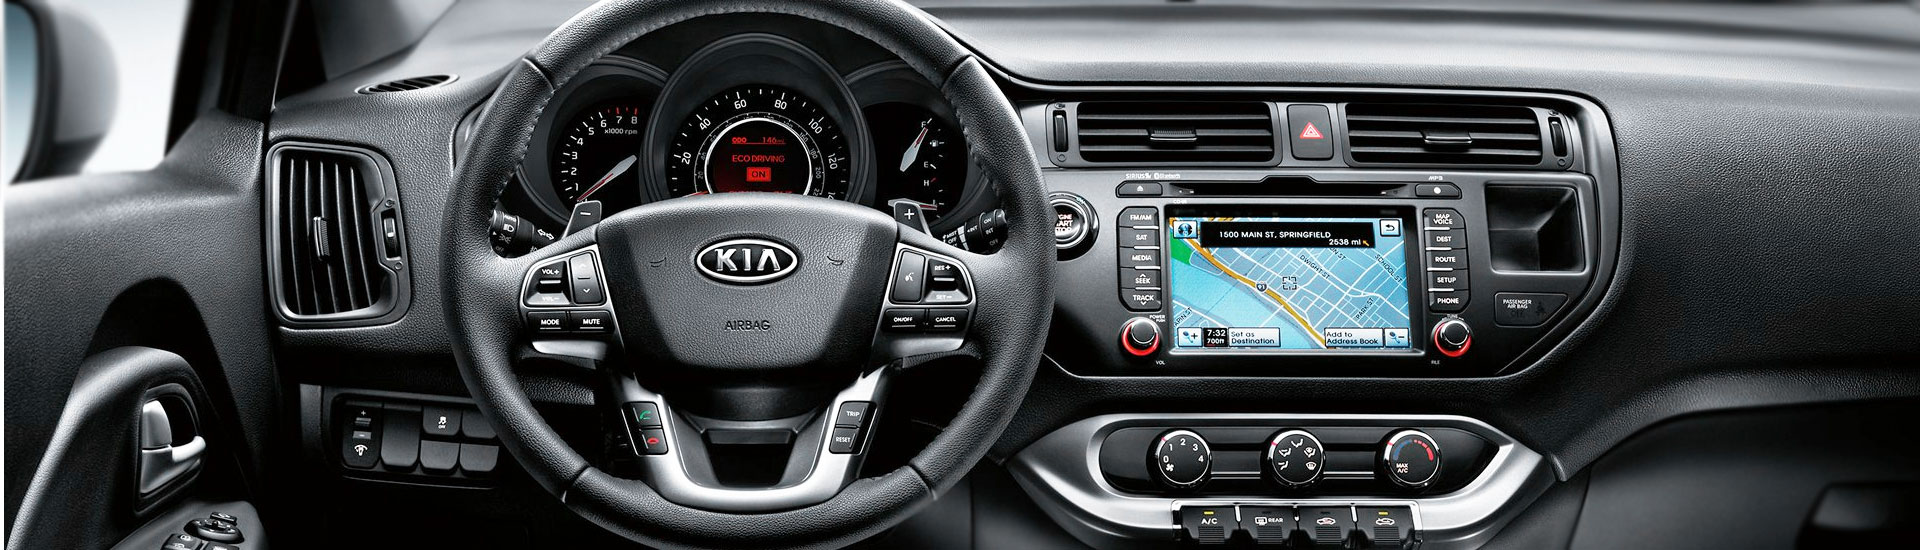 2008 Kia Spectra Custom Dash Kits